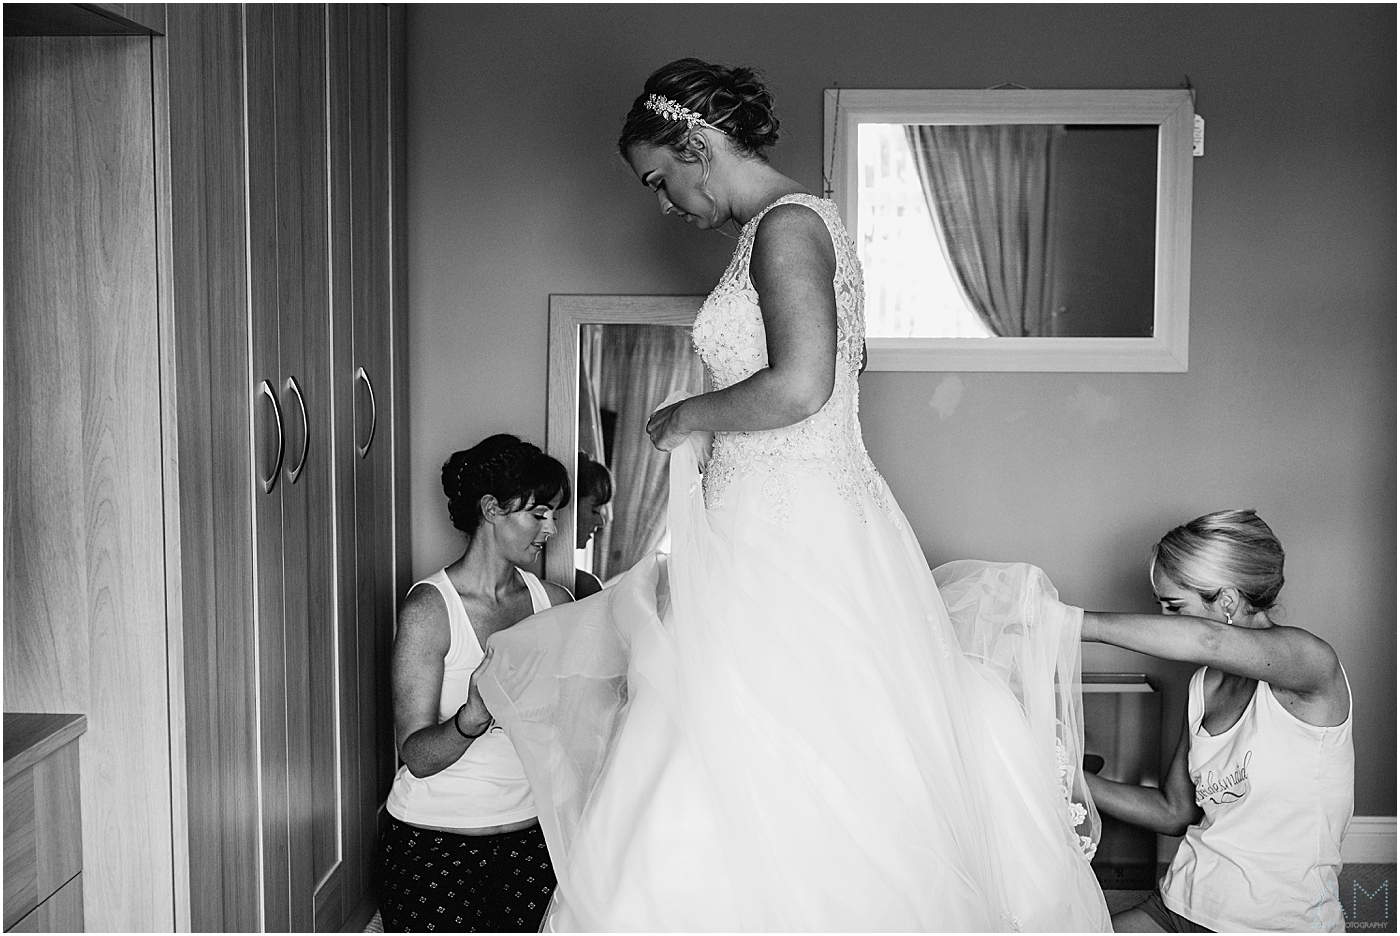 Bride getting helped into her dress by her sister